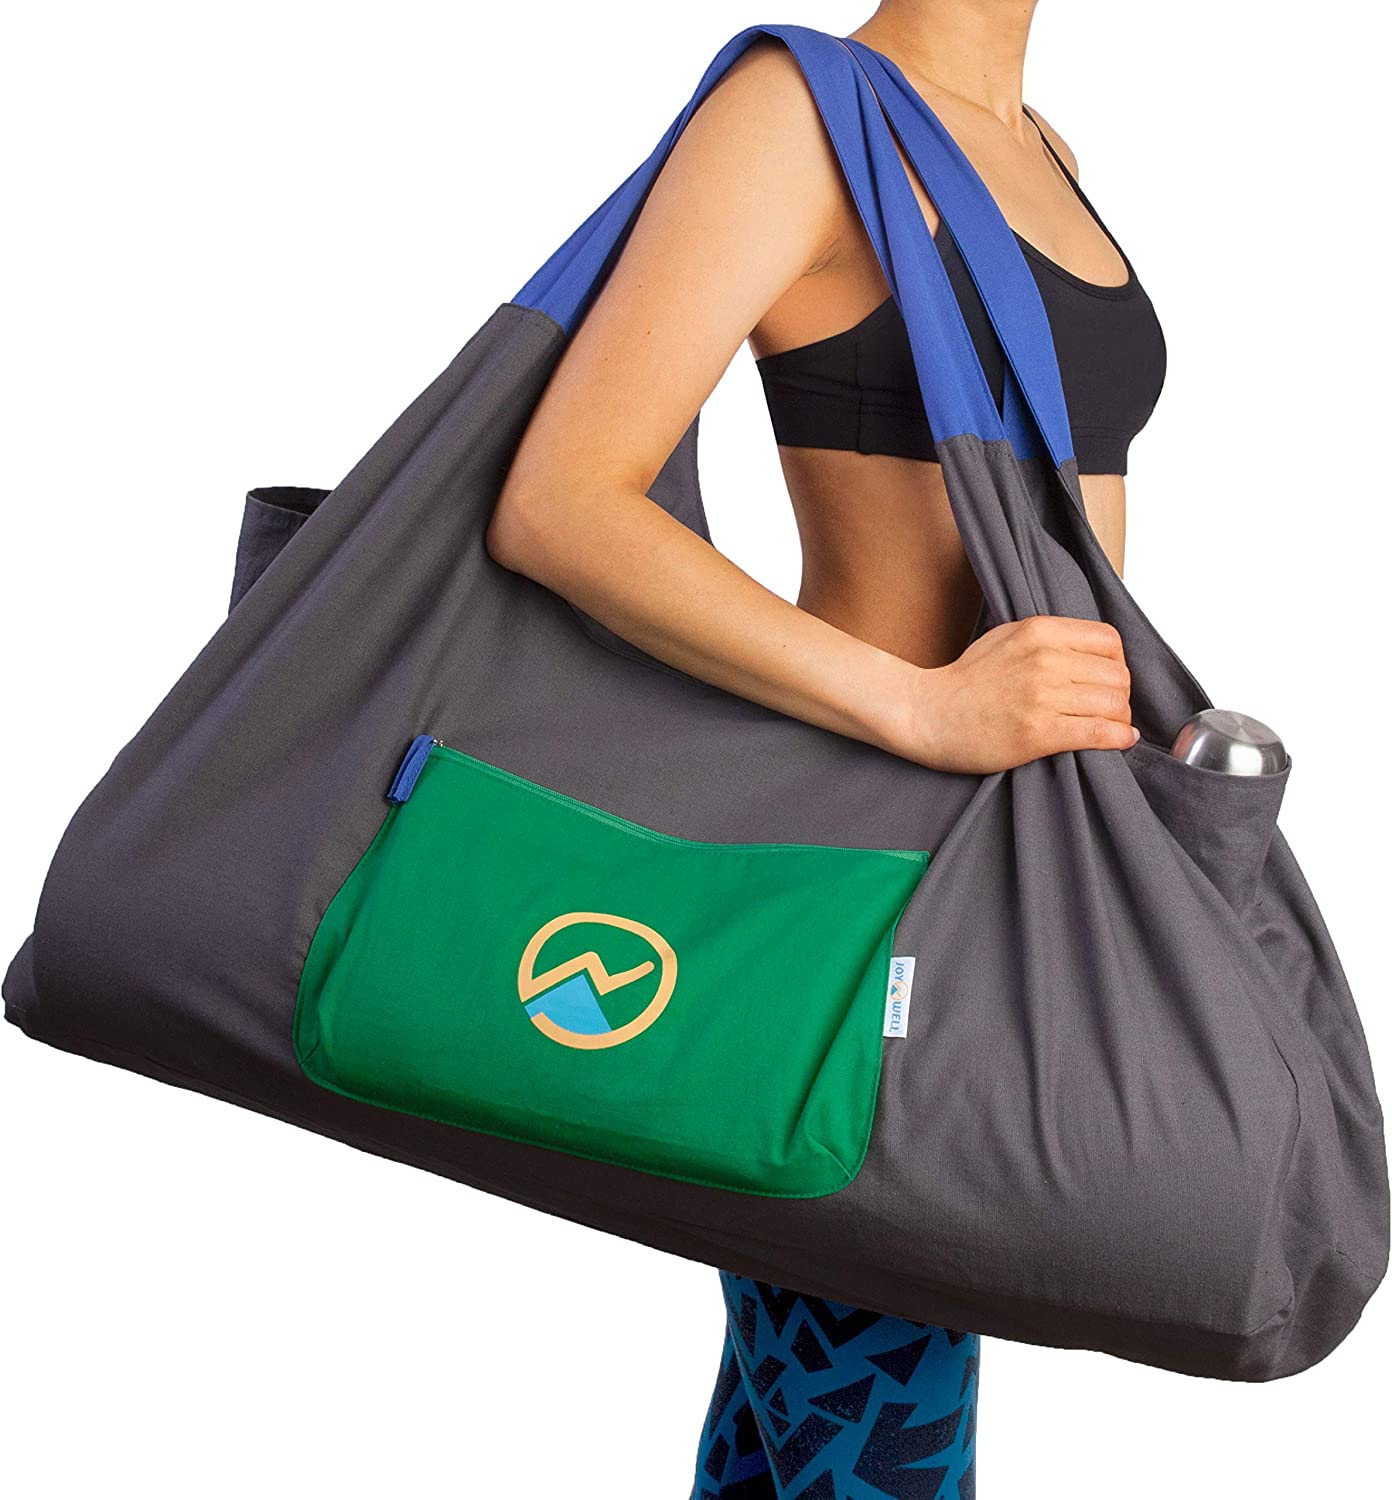 Amazon Com Joynwell Full Zip Extra Large Yoga Mat Bag With Sewn In Mat Holder Straps And 3 Pockets Fits All Your Yoga Accessories Blocks And Bolsters Multi Functional Durable Gym Bag Gray Sports